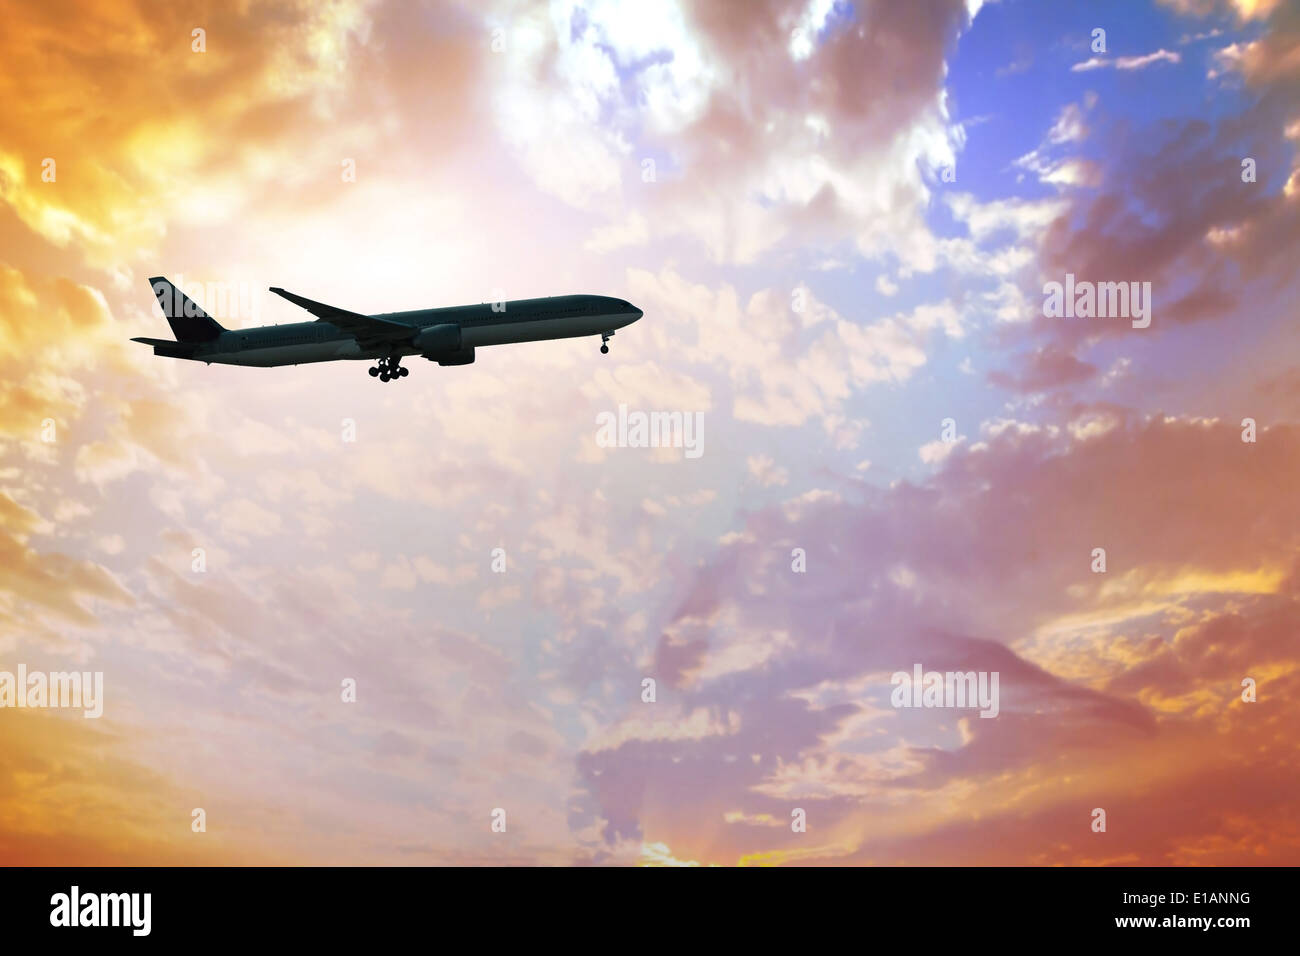 silhouette of airplane at sunset sky - Stock Image